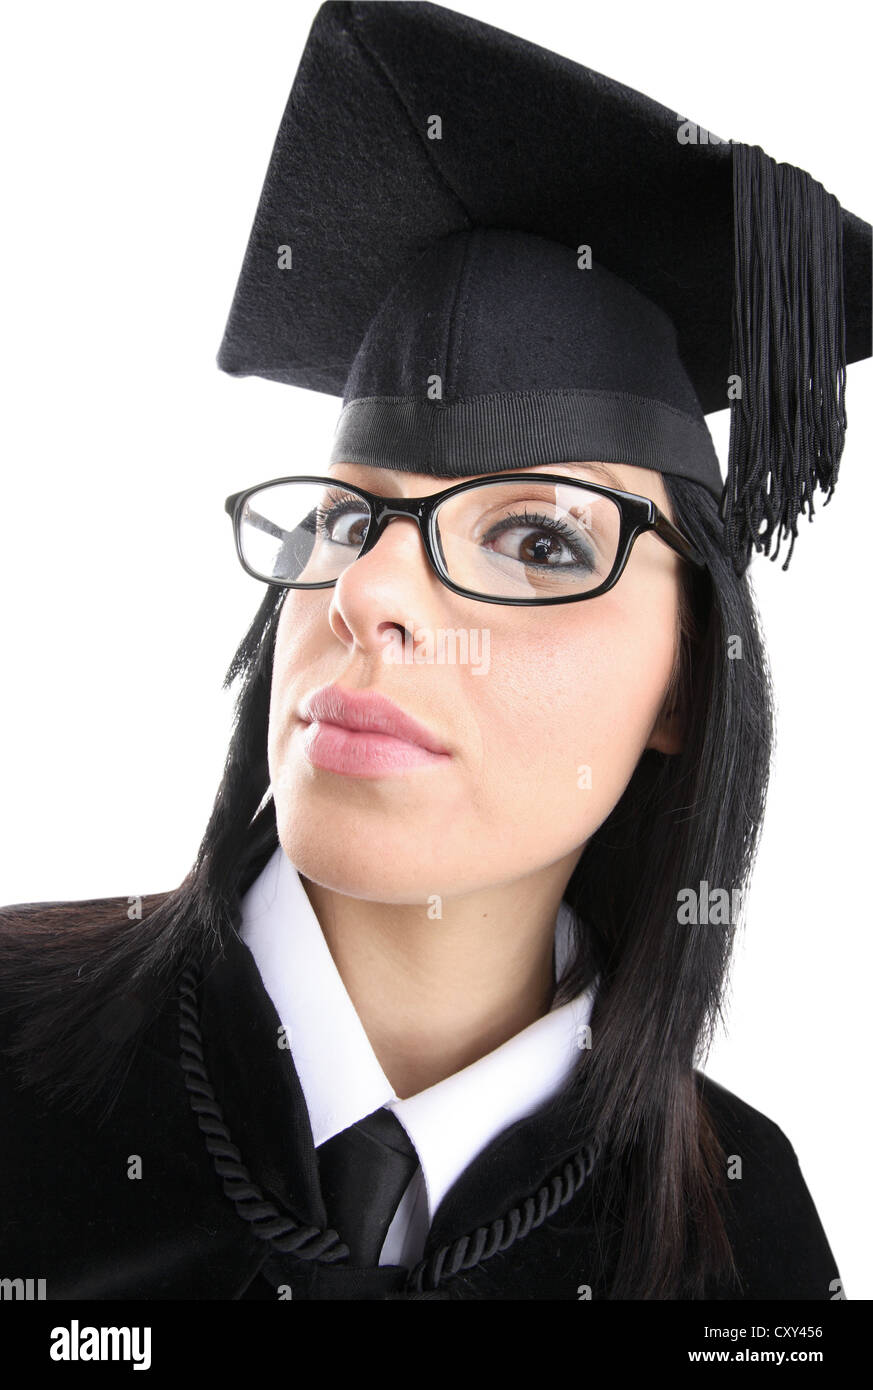 Female student wearing a graduation cap and glasses - Stock Image